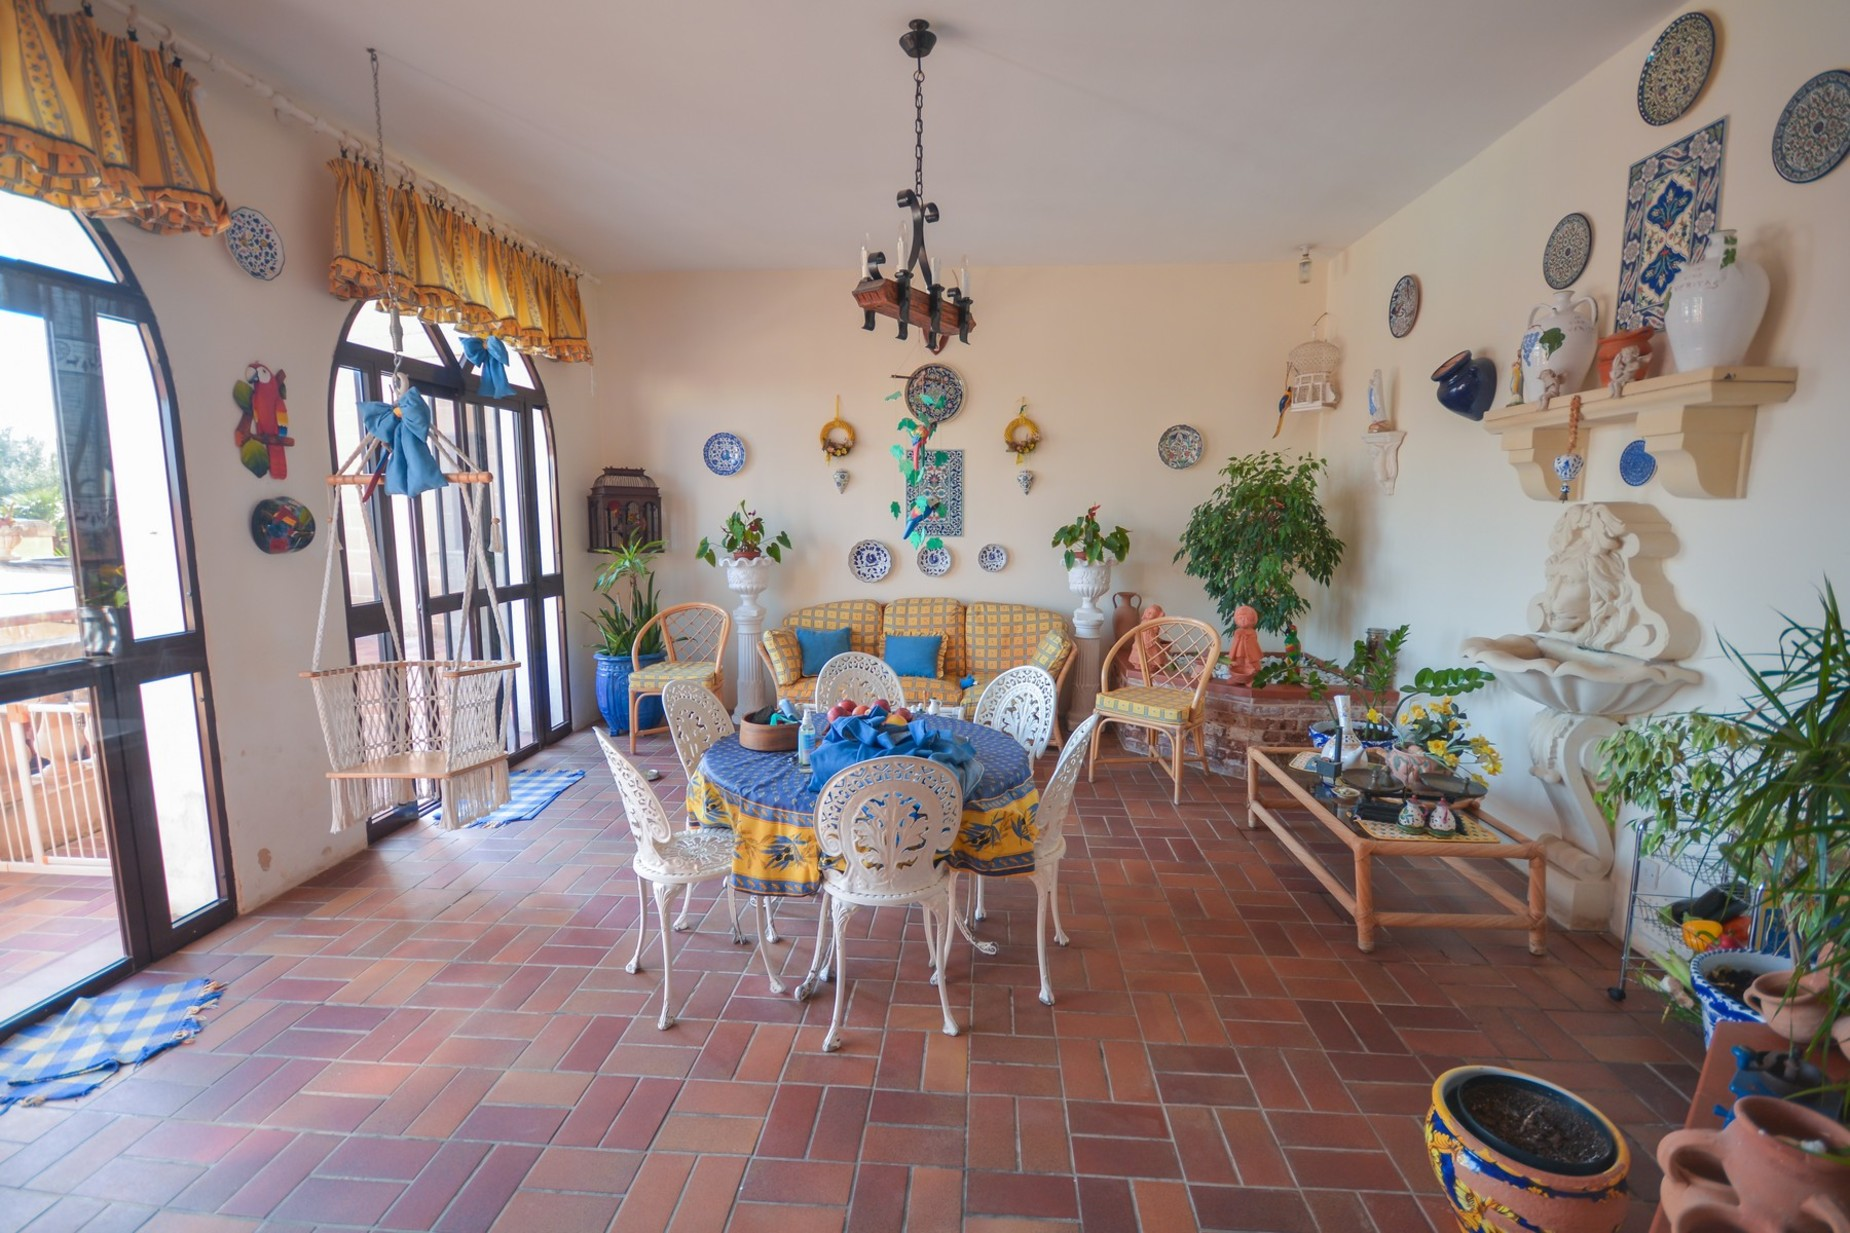 10 bed Villa For Sale in Madliena, Madliena - thumb 9